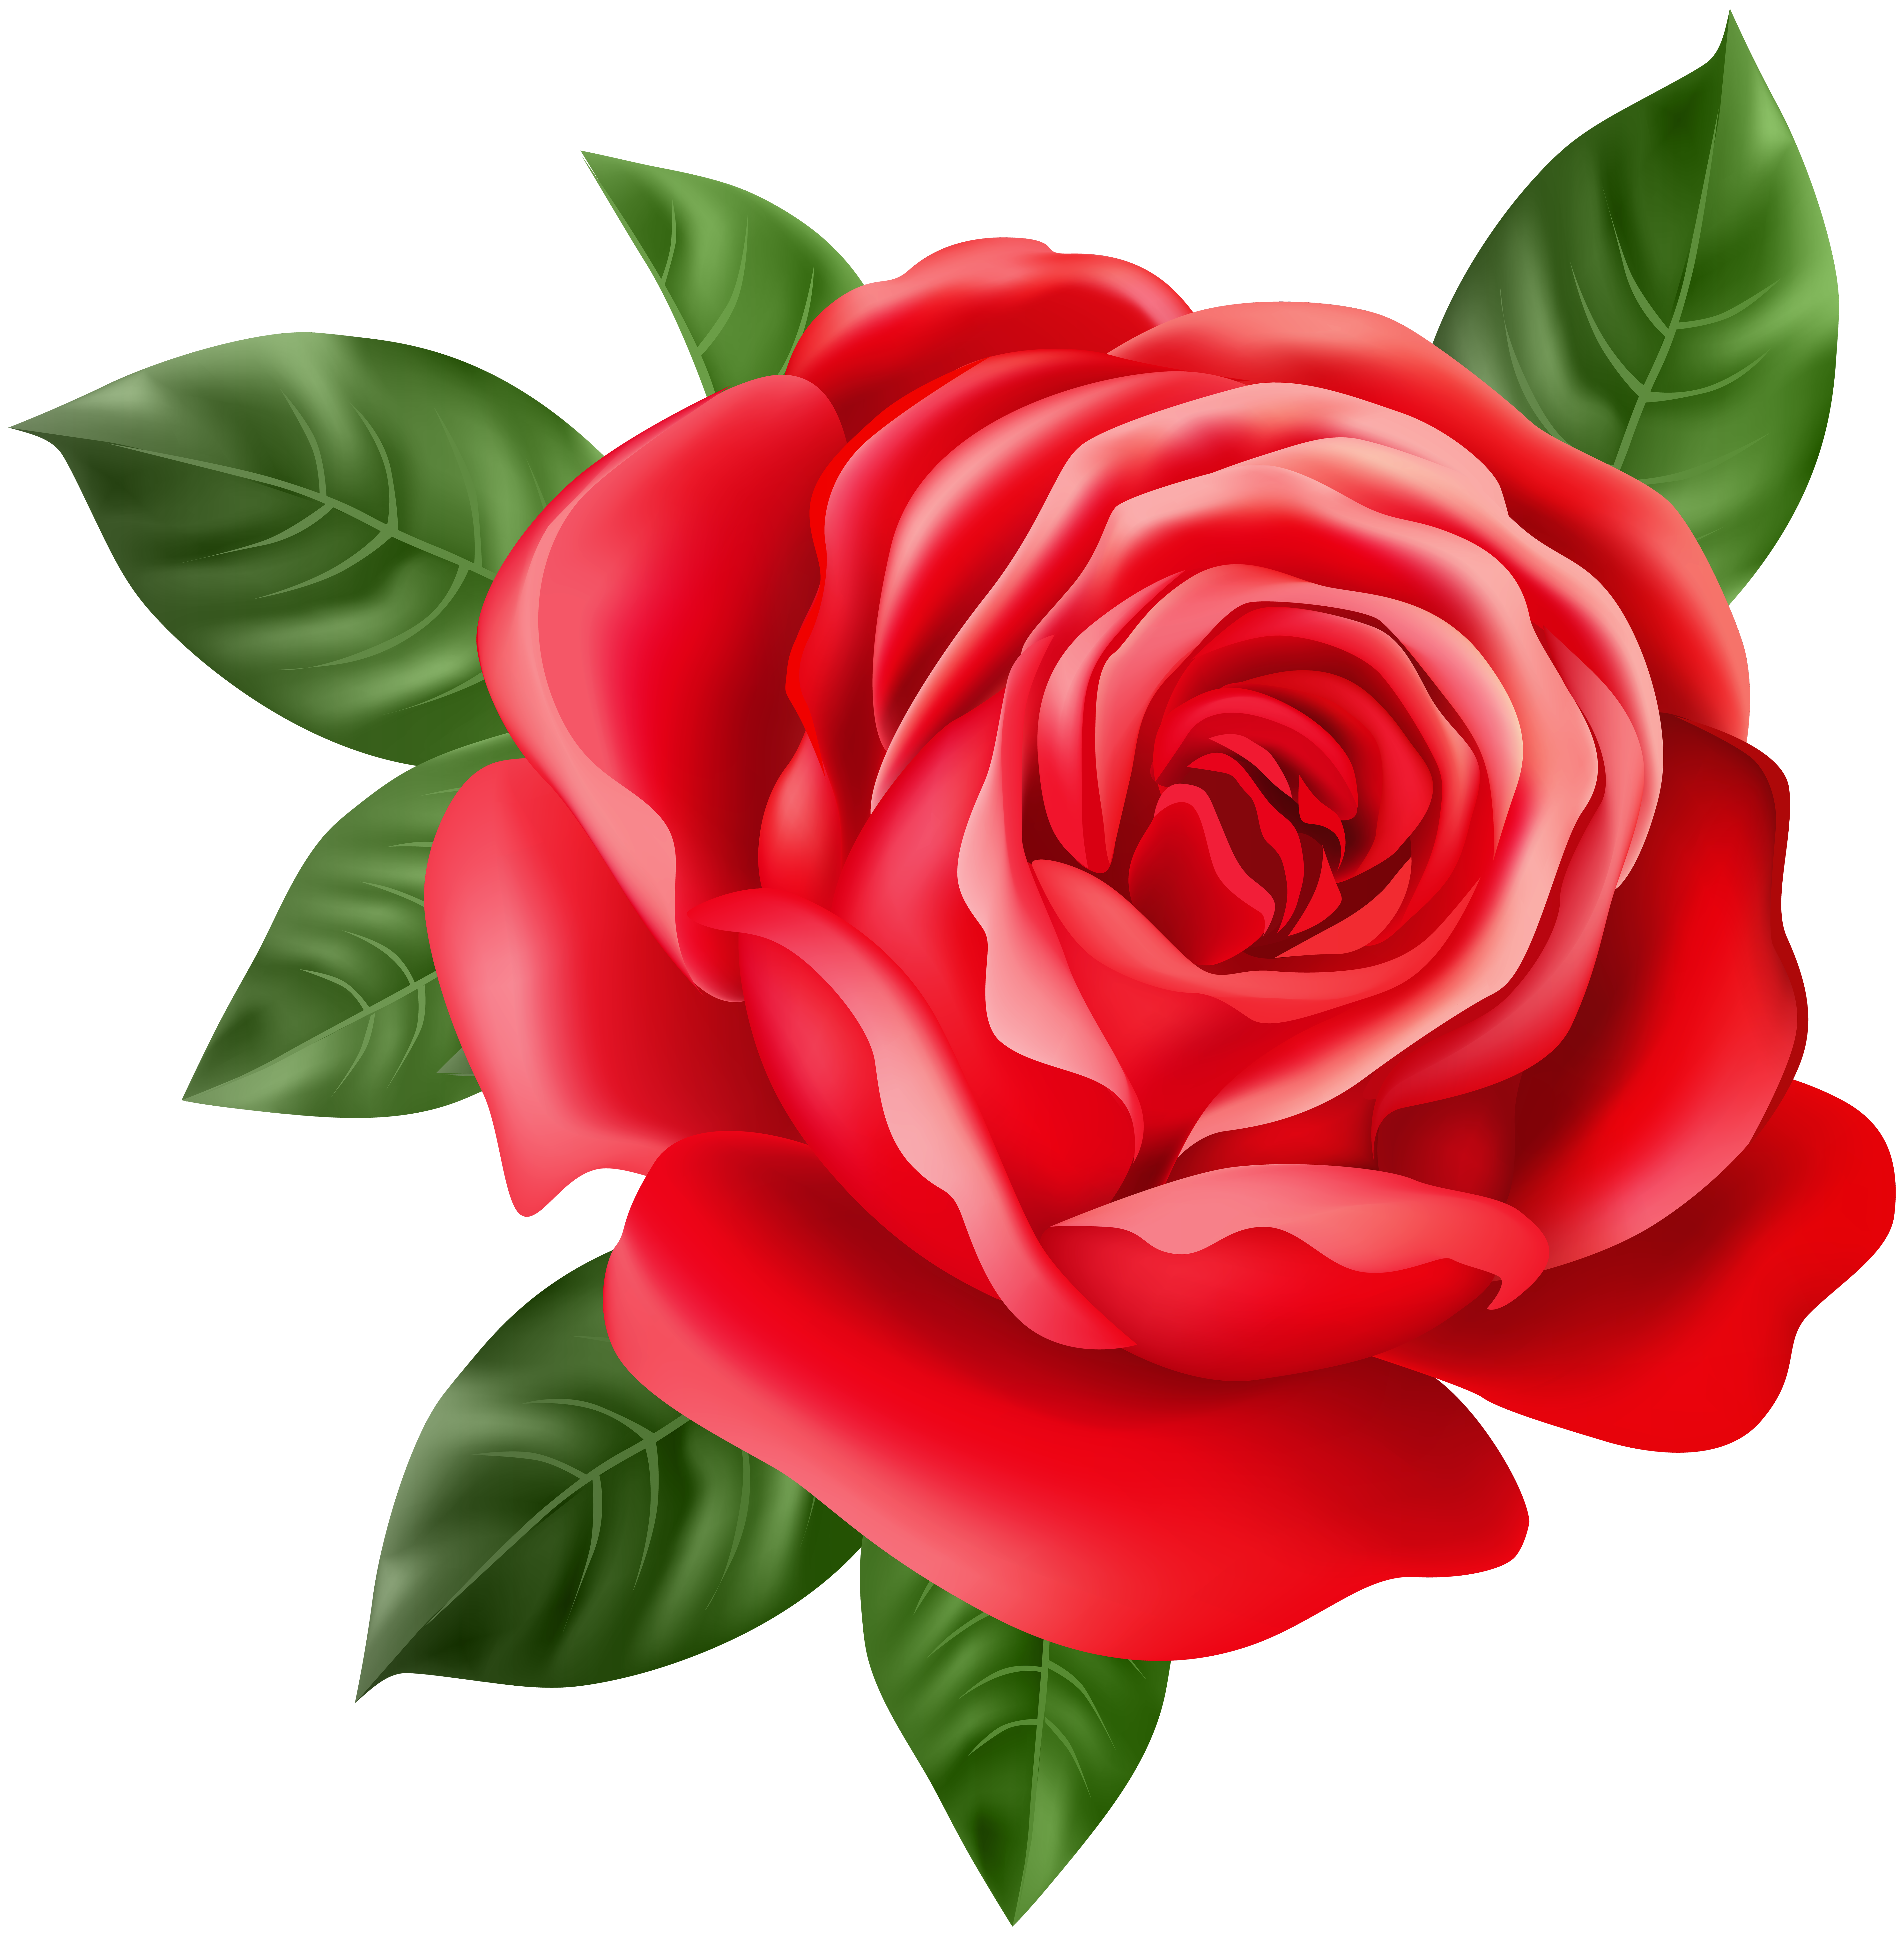 Red Rose Transparent Png Clip Art Gallery Yopriceville High Quality Images And Transparent Beautiful Flower Drawings Rose Flower Wallpaper Flower Clipart